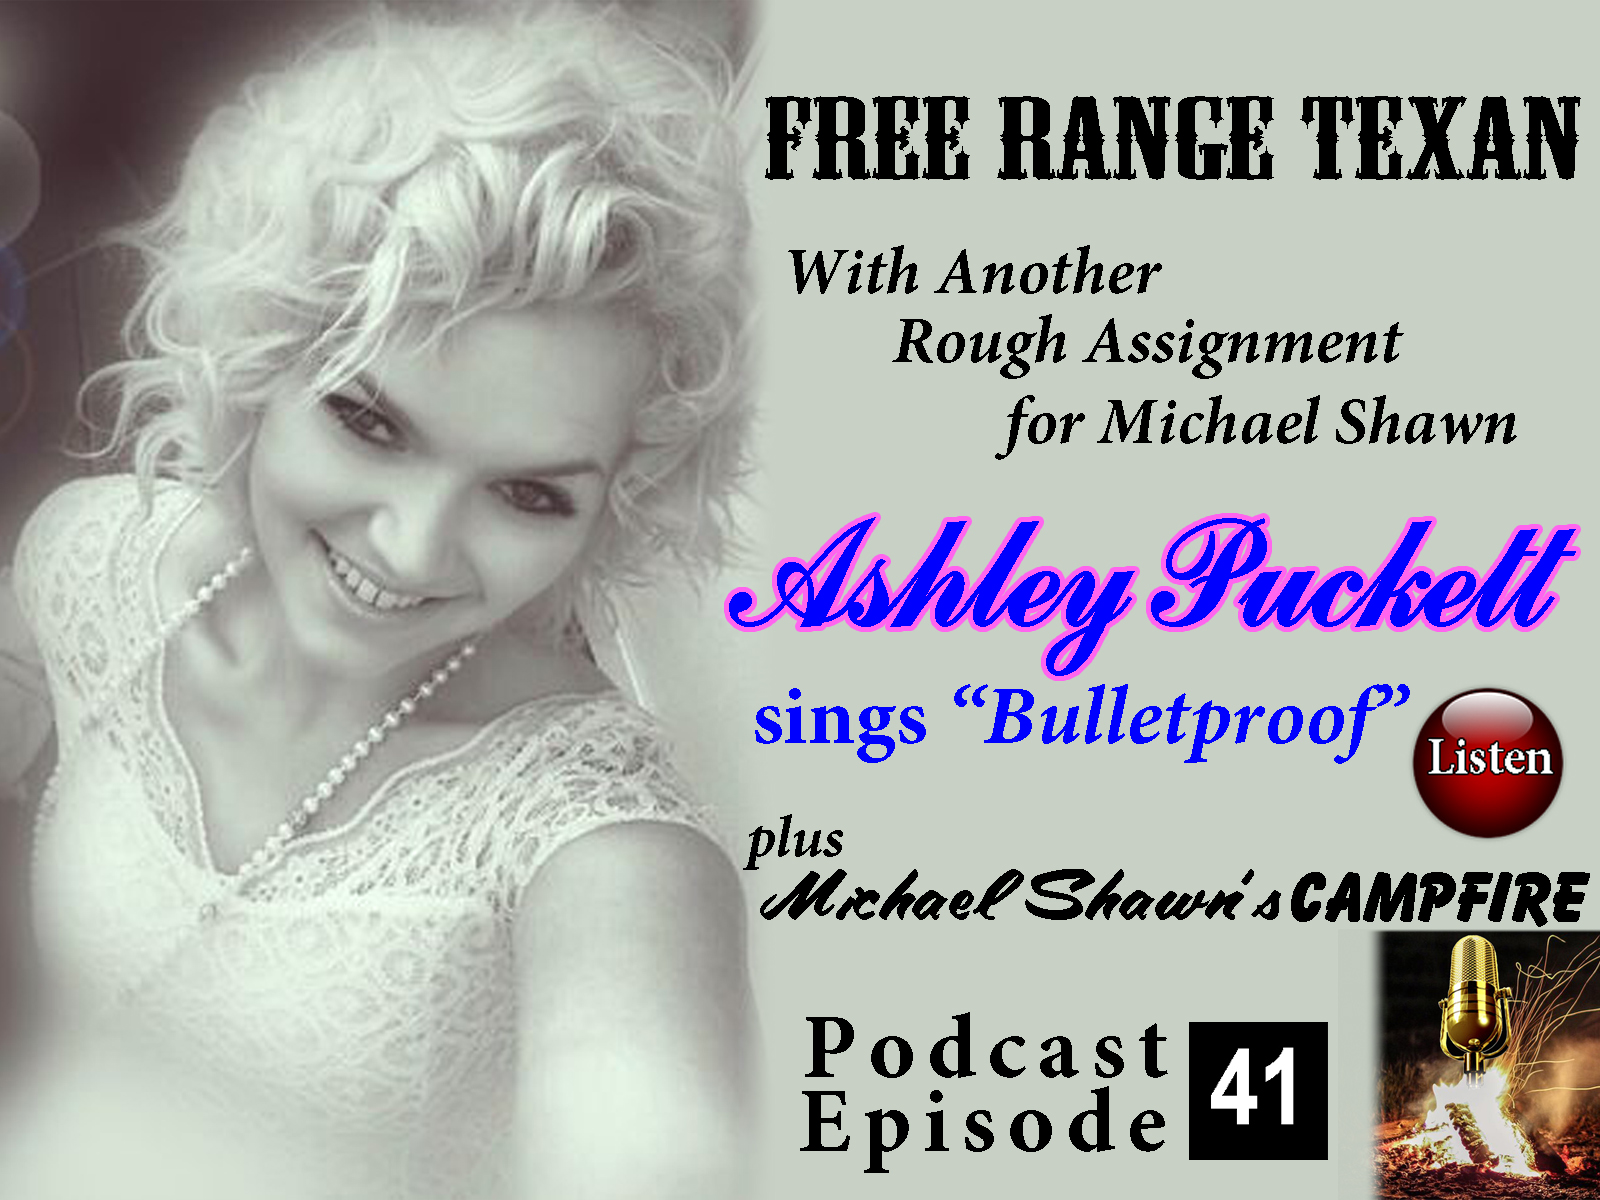 Free Range Talent File Ashley Puckett